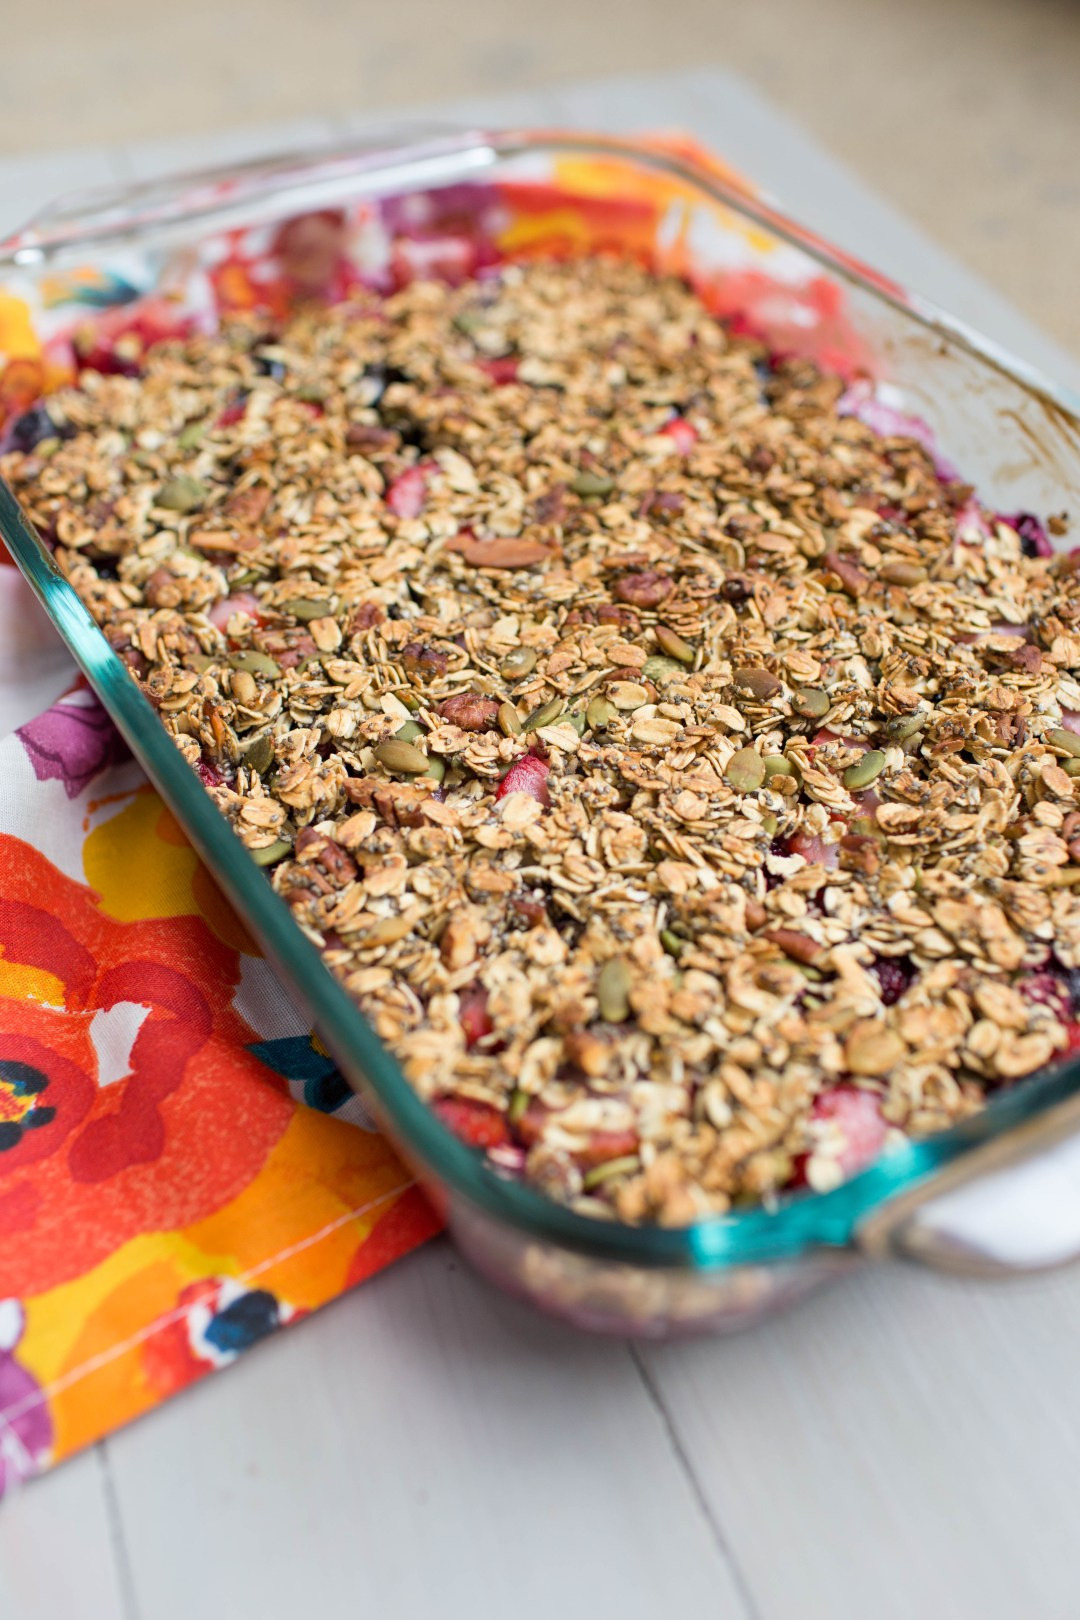 This summer berry crisp is the perfect dessert or breakfast treat! Gluten and dairy free! | read more at happilythehicks.com